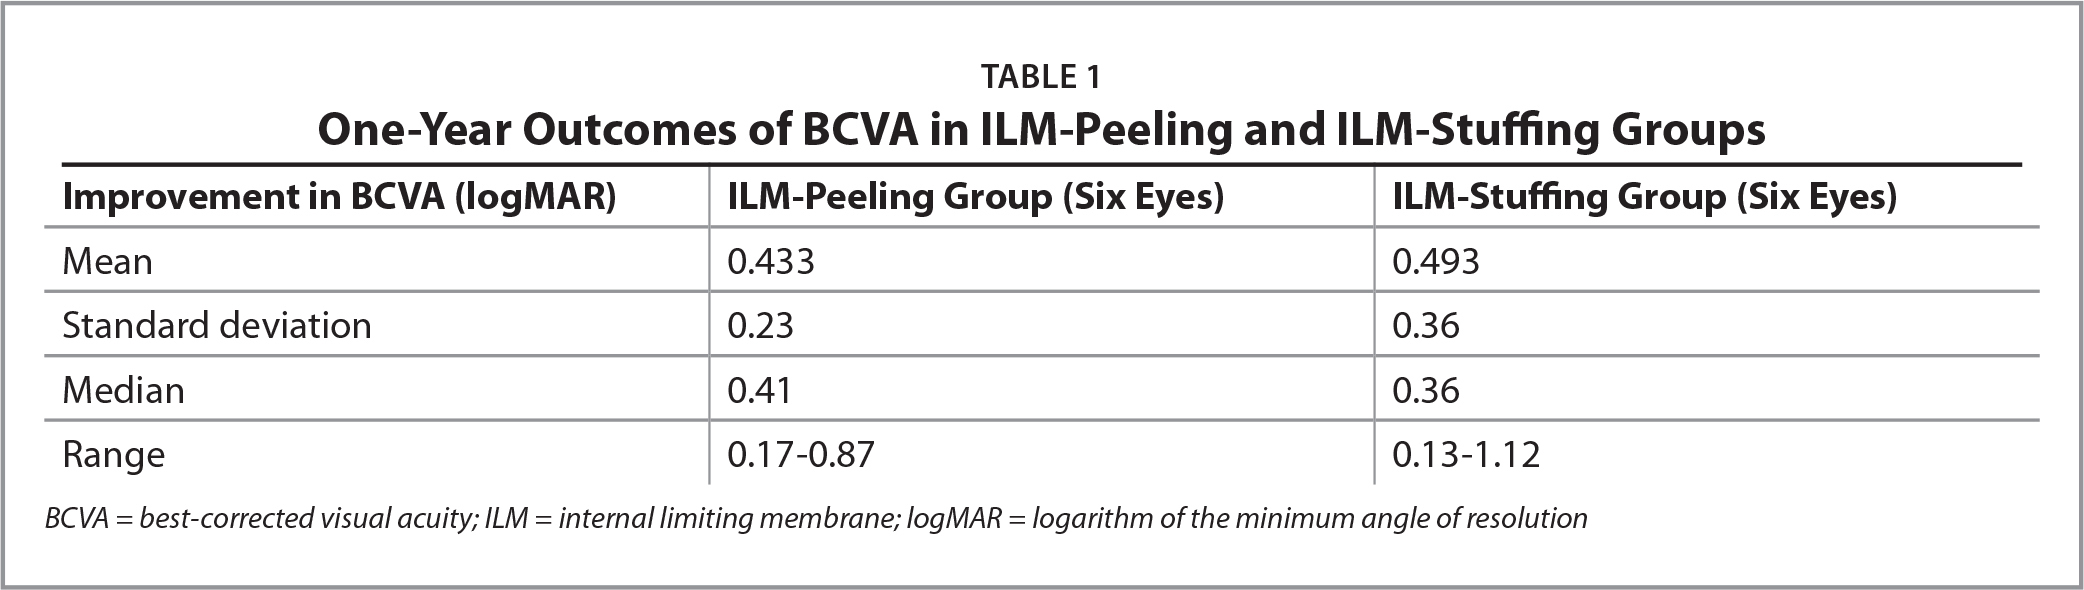 One-Year Outcomes of BCVA in ILM-Peeling and ILM-Stuffing Groups